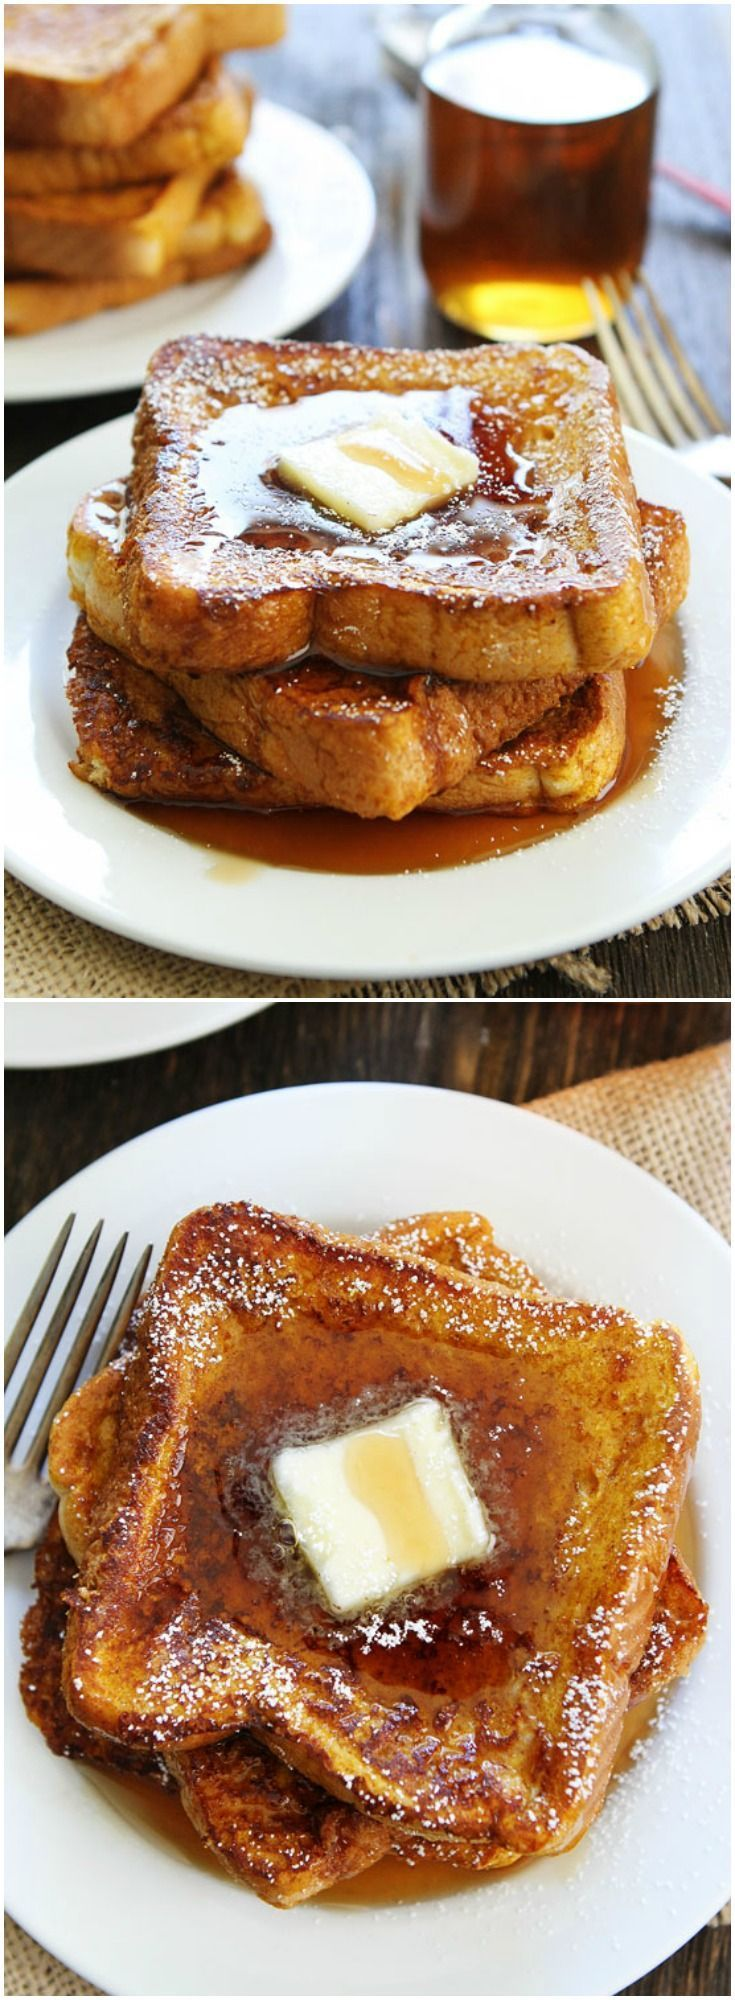 Pumpkin French Toast Recipe on twopeasandtheirpod.com This French Toast is amazing and the perfect fall breakfast treat!